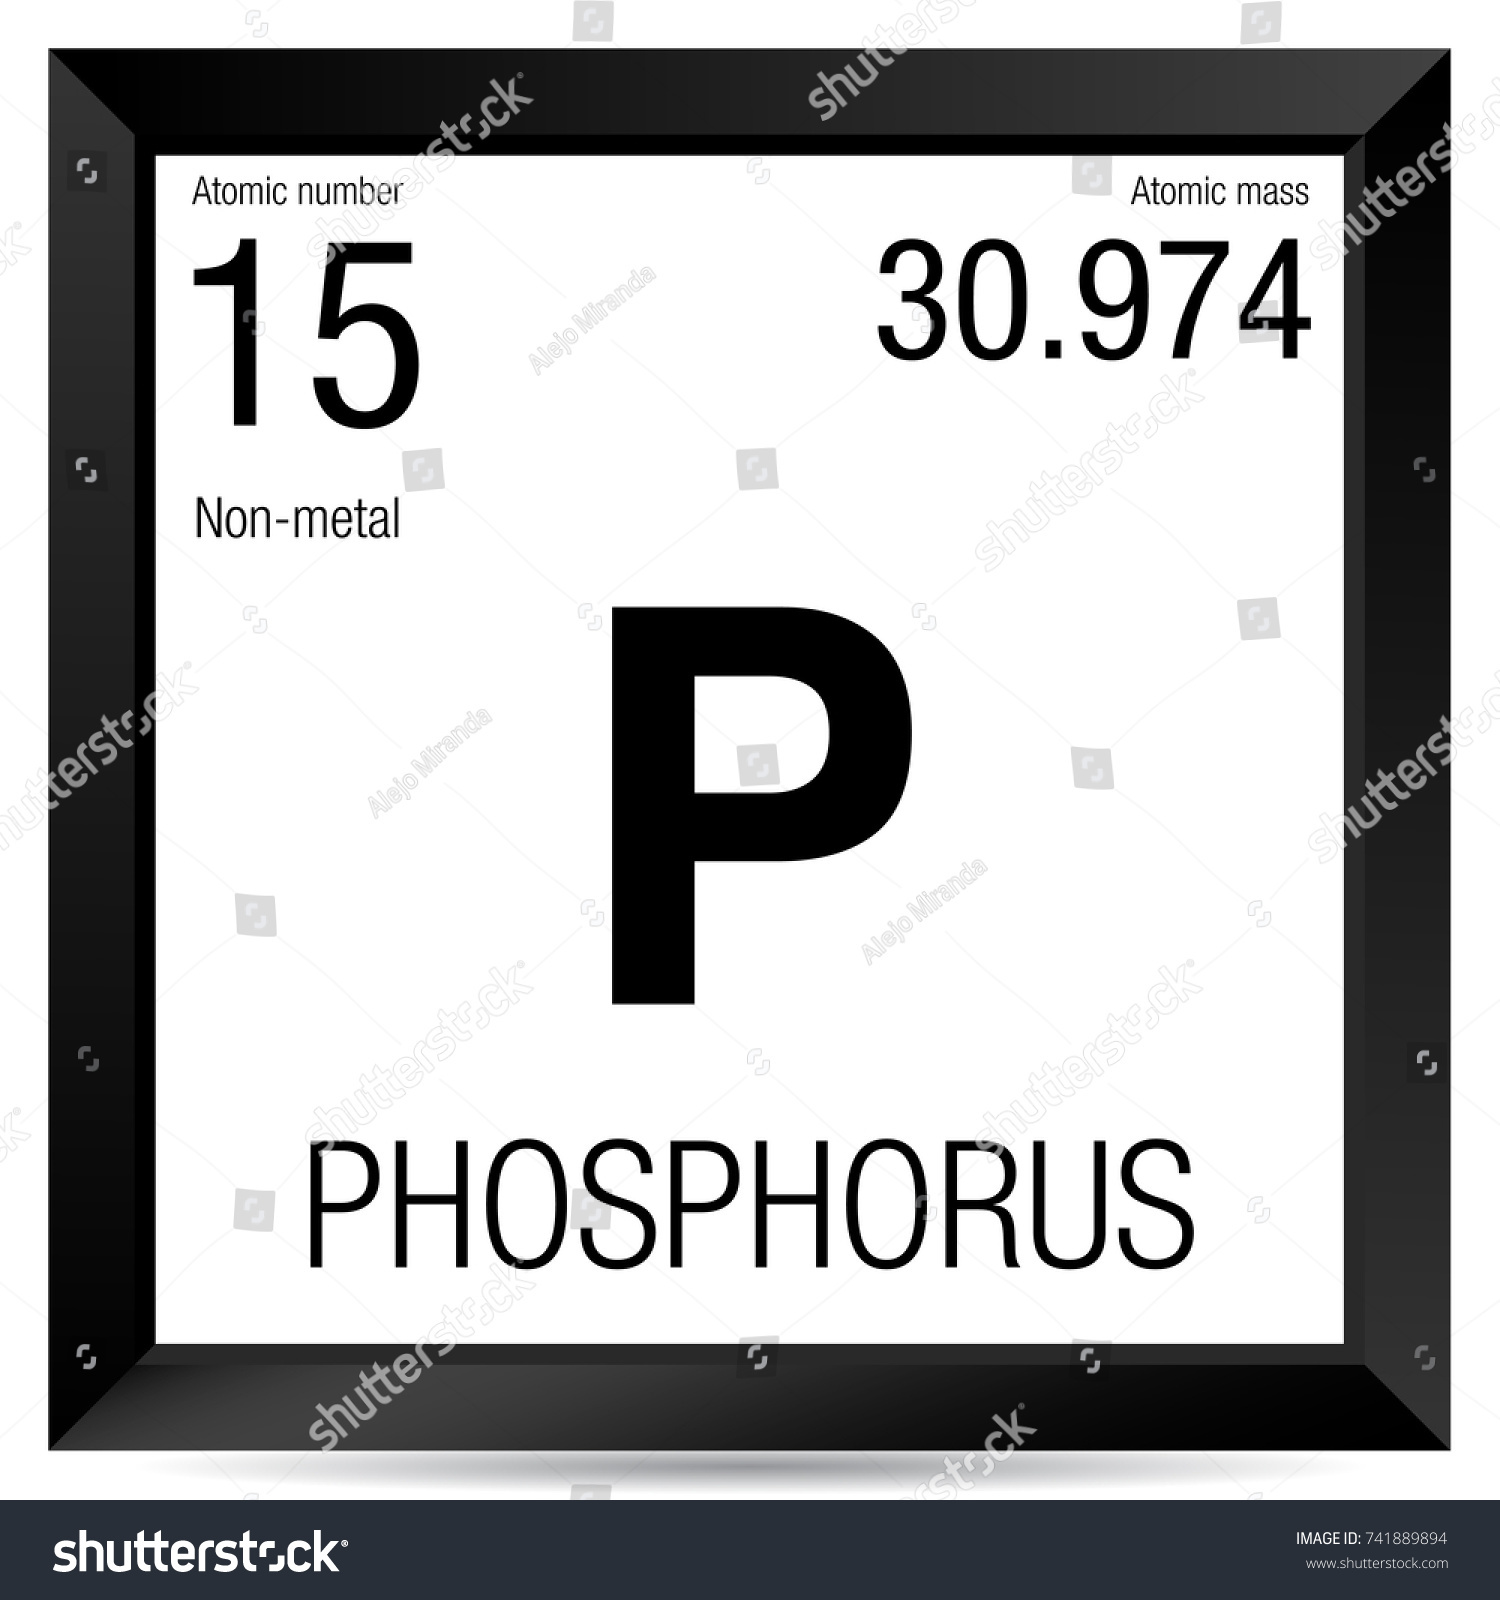 Phosphorus symbol periodic table gallery periodic table images phosphorus symbol element number 15 periodic stock vector phosphorus symbol element number 15 of the periodic gamestrikefo Image collections